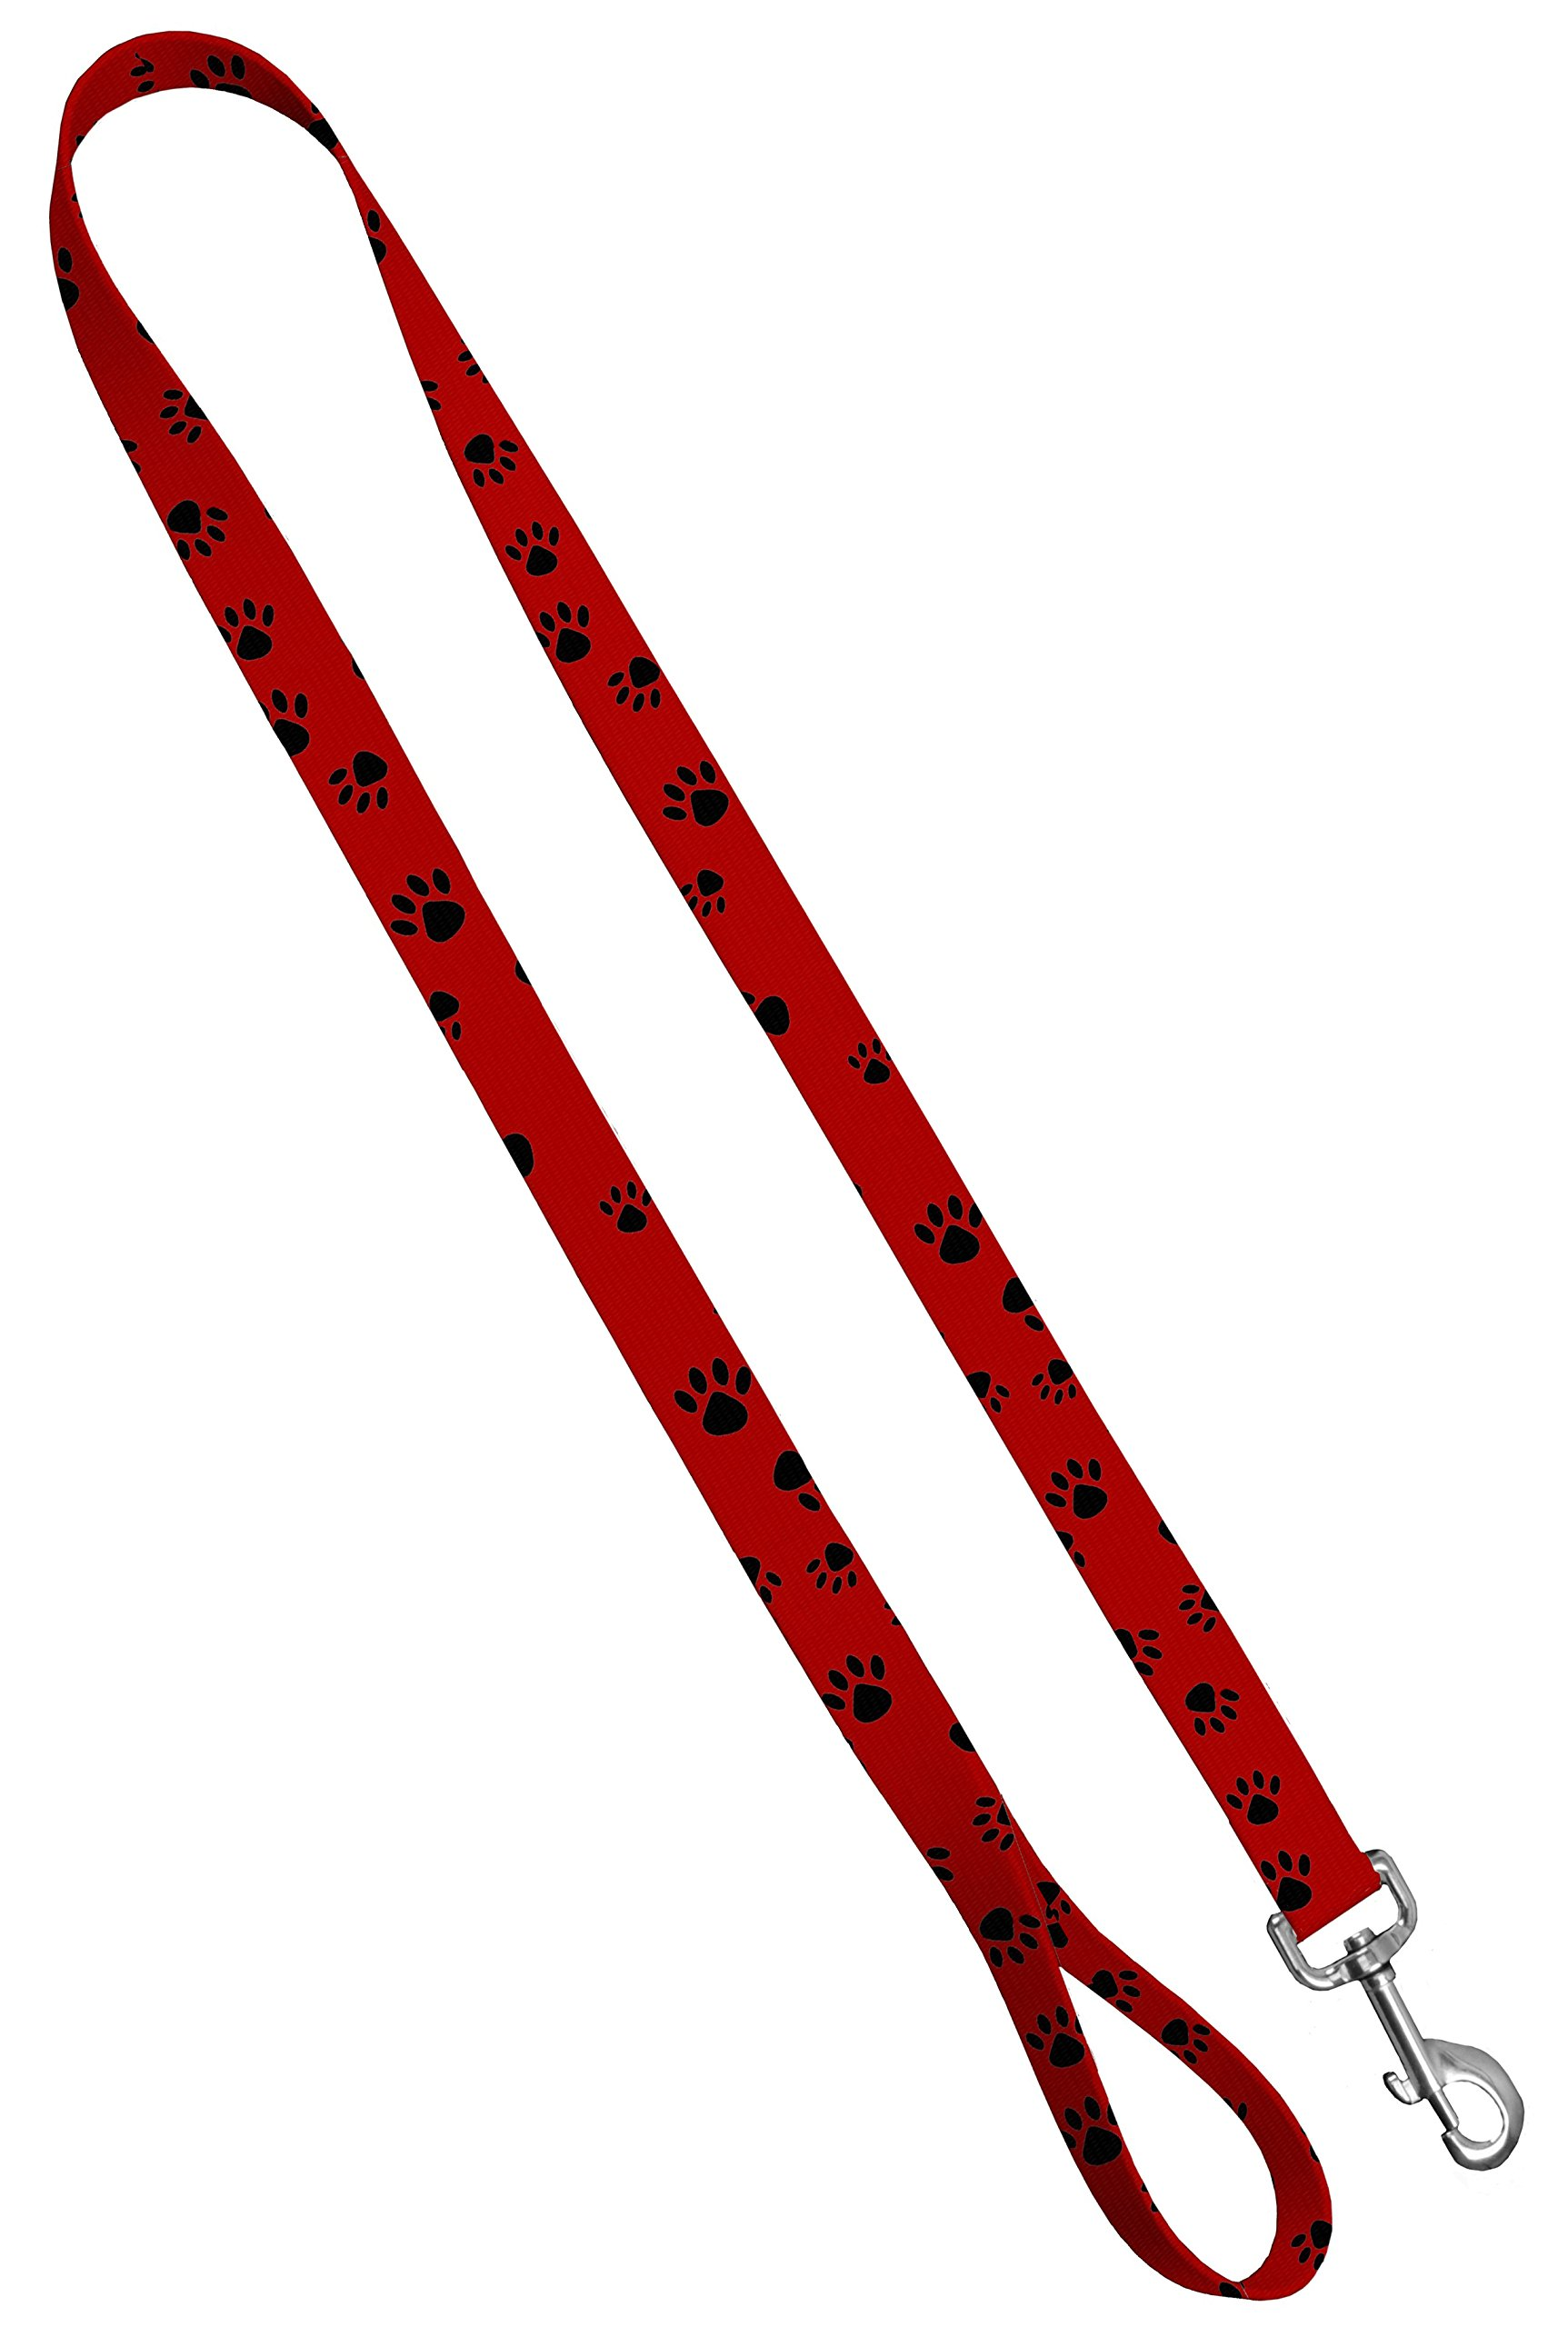 Moose Pet Wear Deluxe Dog Leash - Patterned Heavy Duty Pet Leashes, Made in the USA - 1 Inches x 6 Feet, Puppy Paws Black On Red by Moose Pet Wear